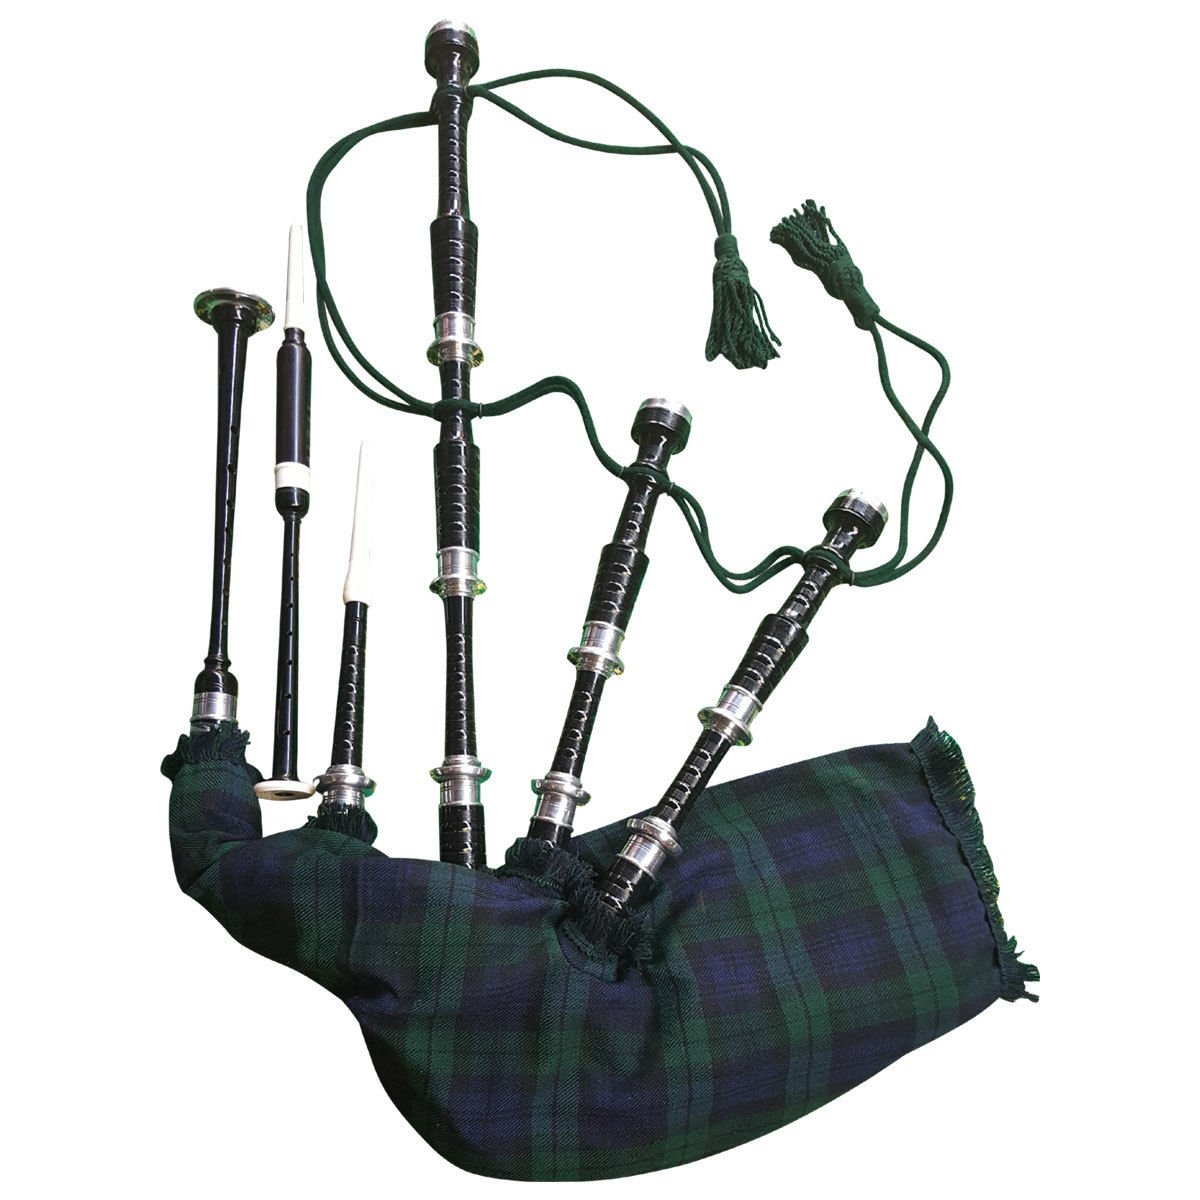 AJW Bagpipes Beginner Full Set with book Learn to play bagpipe